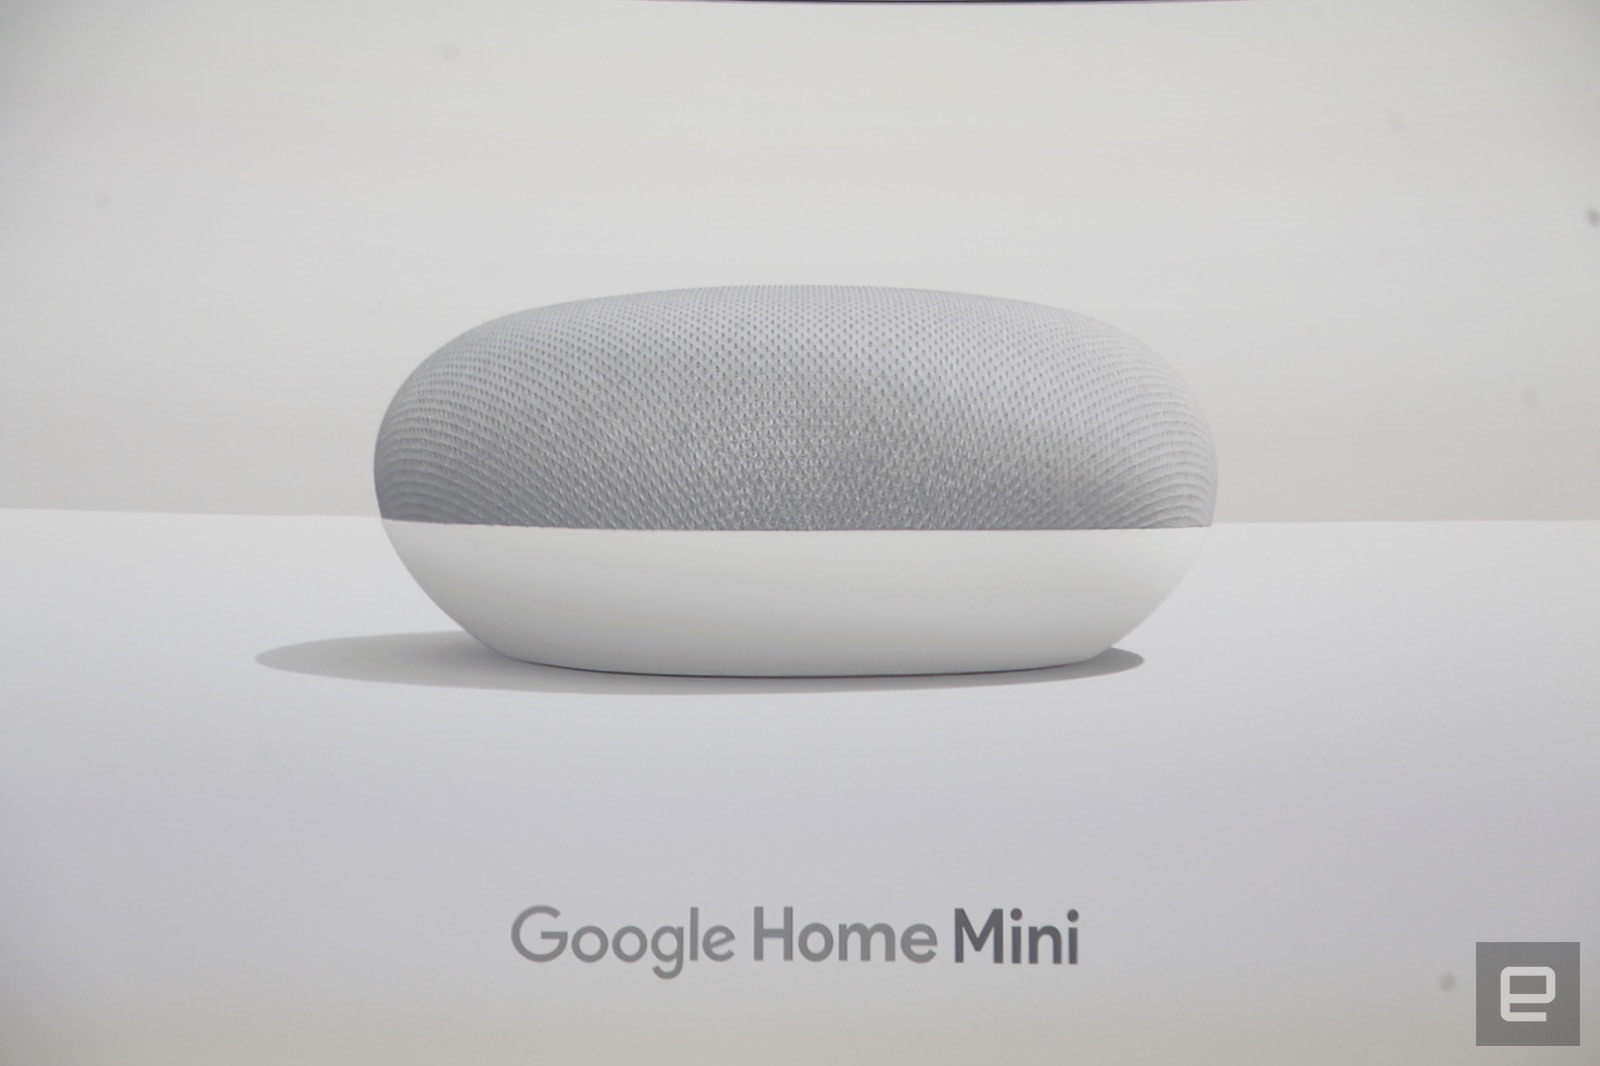 google home mini klein aber oho engadget deutschland. Black Bedroom Furniture Sets. Home Design Ideas